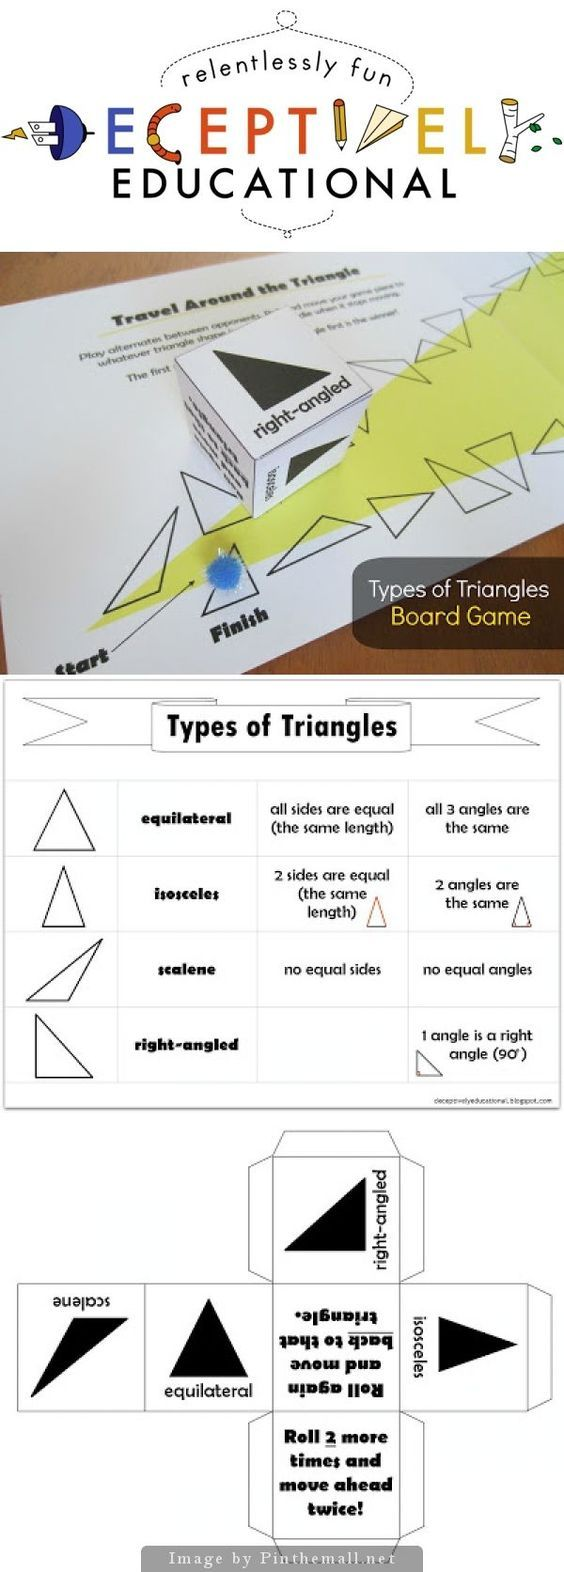 free - types of Triangles Board Game - a board game to help students learn the four types of triangles: ~Scalene ~Right-angled ~Equilateral ~Isosceles   Includes a sheet explaining the differences between the four types of triangles  